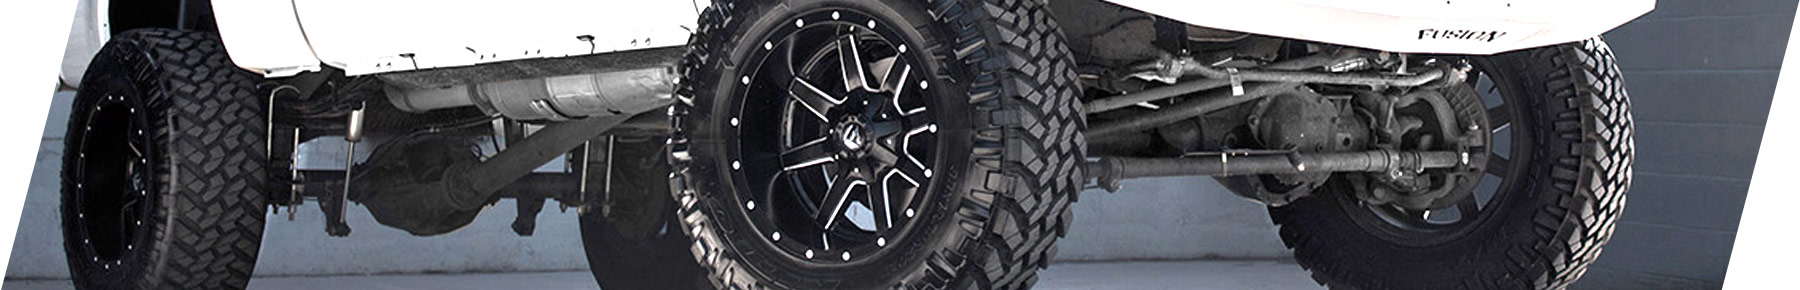 1999-2018 Super Duty Wheels and Tires